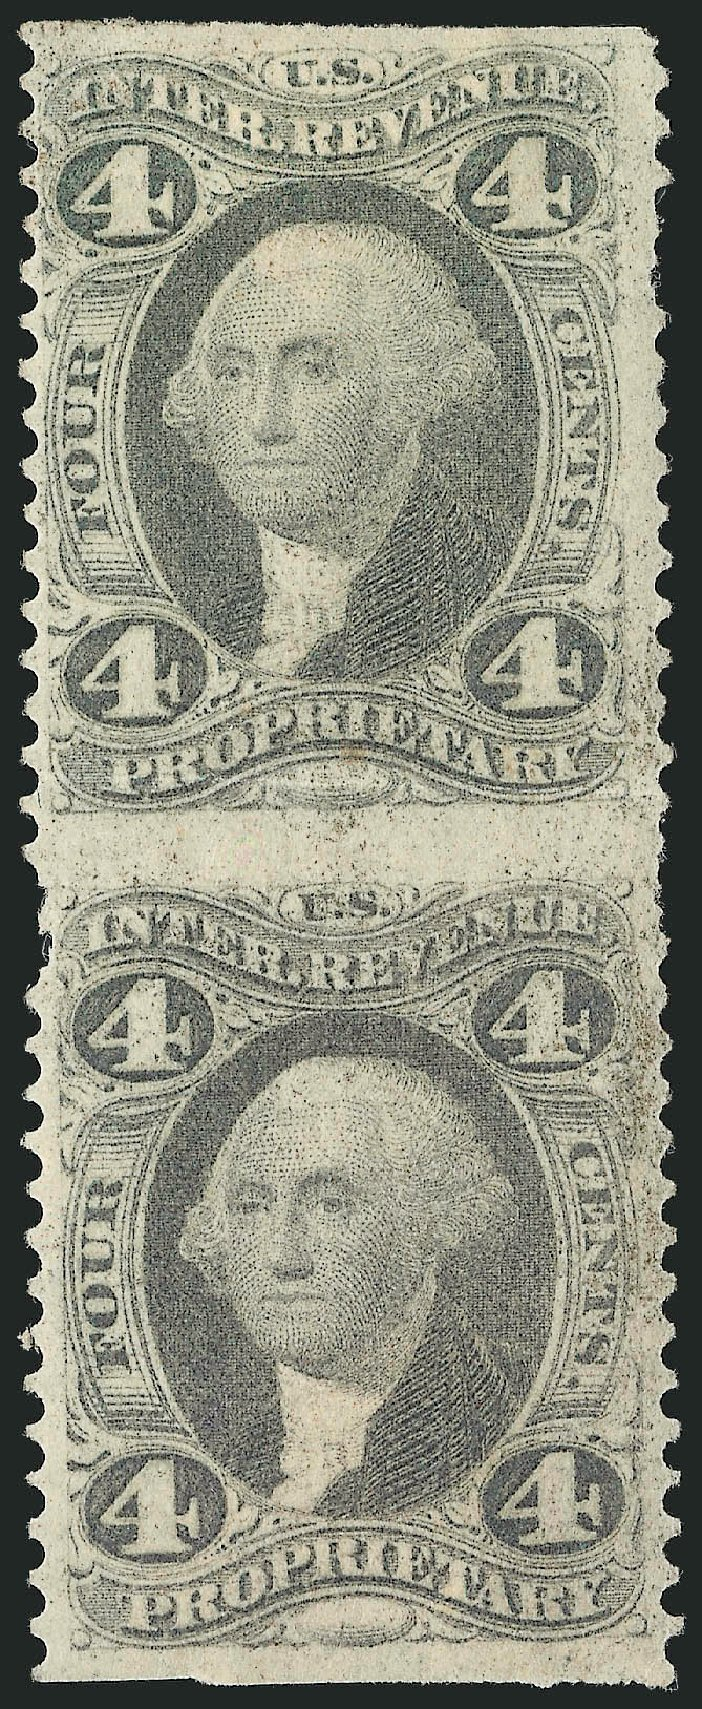 Value of US Stamp Scott Catalog # R22 - 1862 4c Revenue Proprietary. Robert Siegel Auction Galleries, Dec 2014, Sale 1089, Lot 289